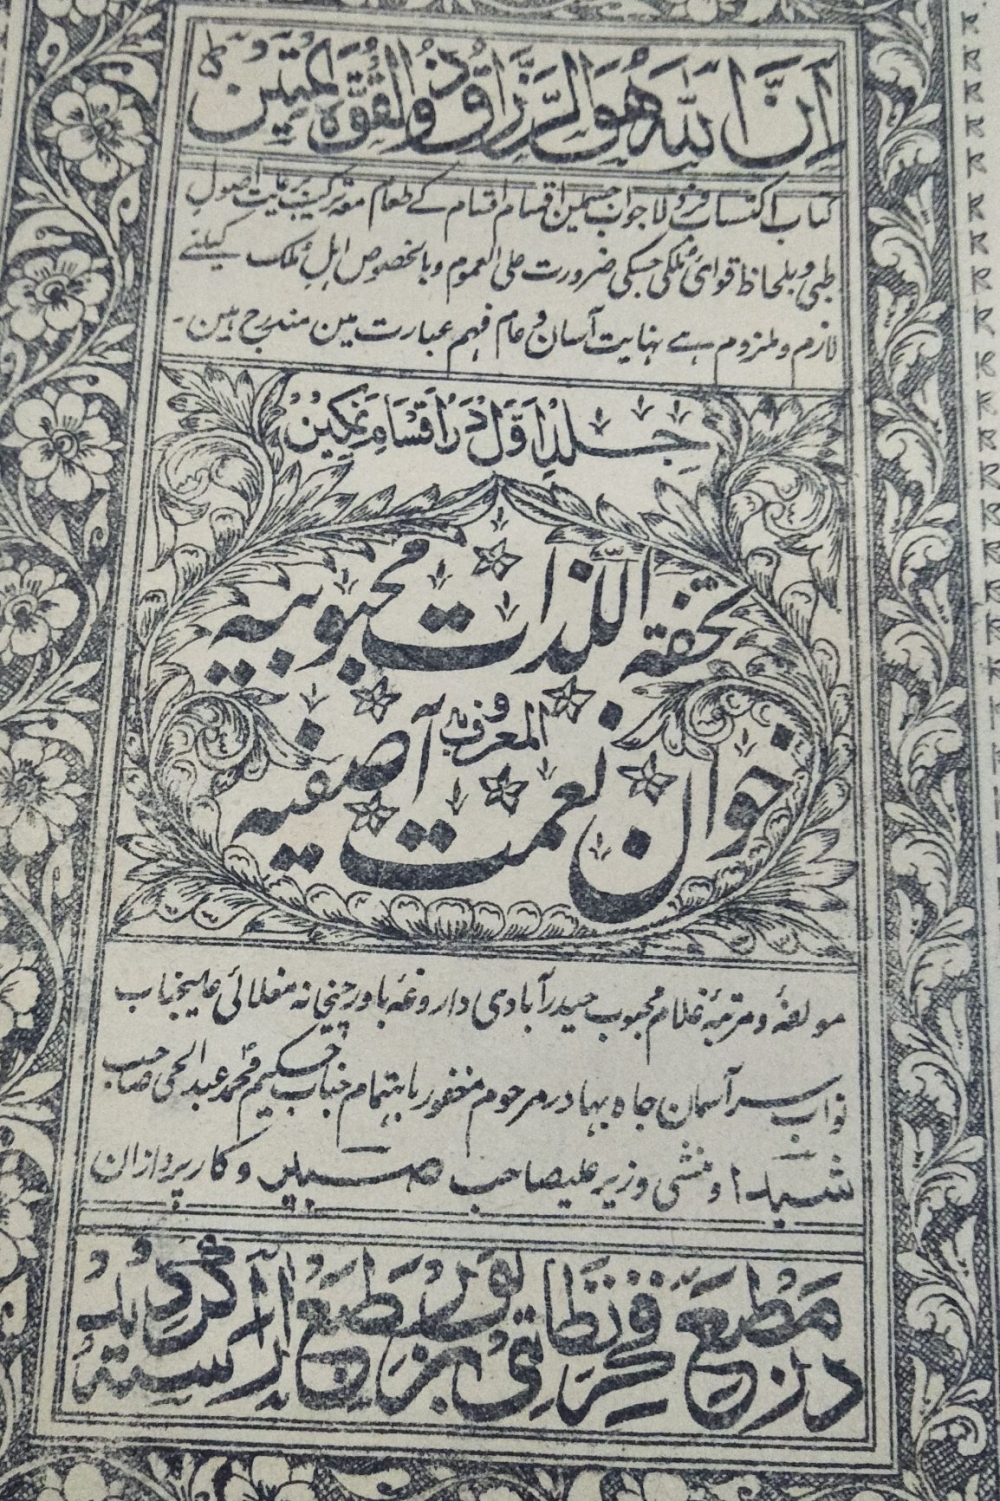 A coverpage for the Khwān Neʿmat-e Āṣafiya that explains the background and prestige of the author, Ghulām Maḥbūb Ḥyderābādī. Courtesy: Amanda Lanzillo